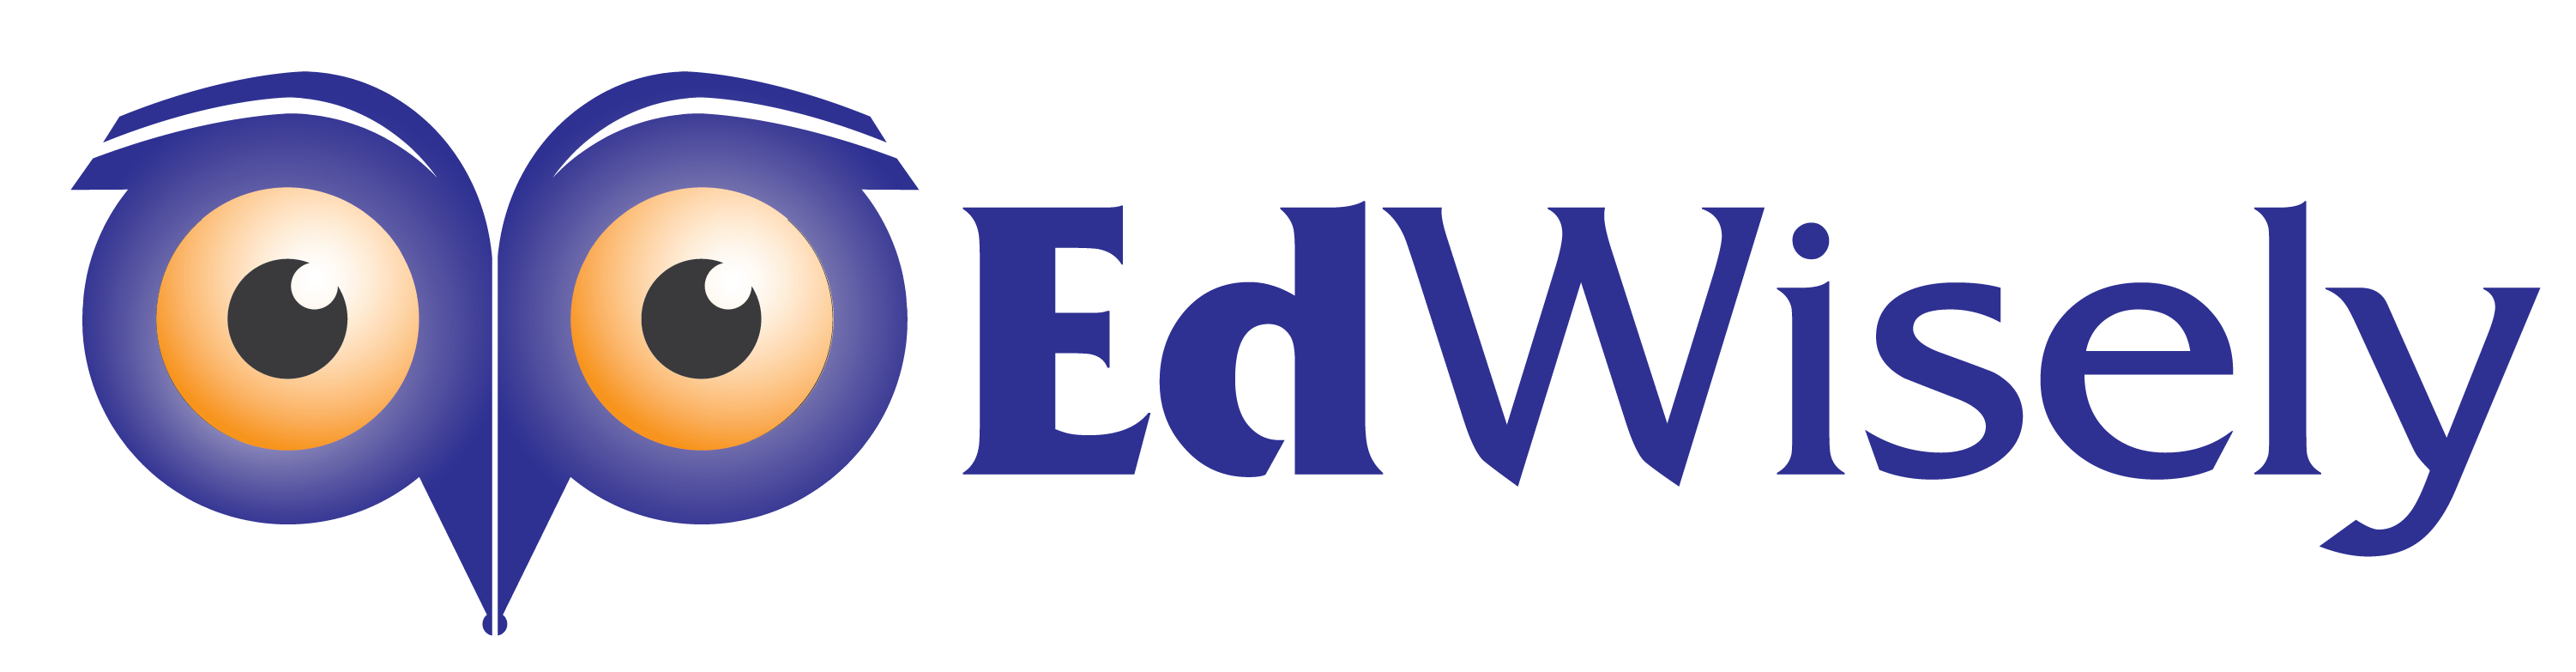 Edwisely